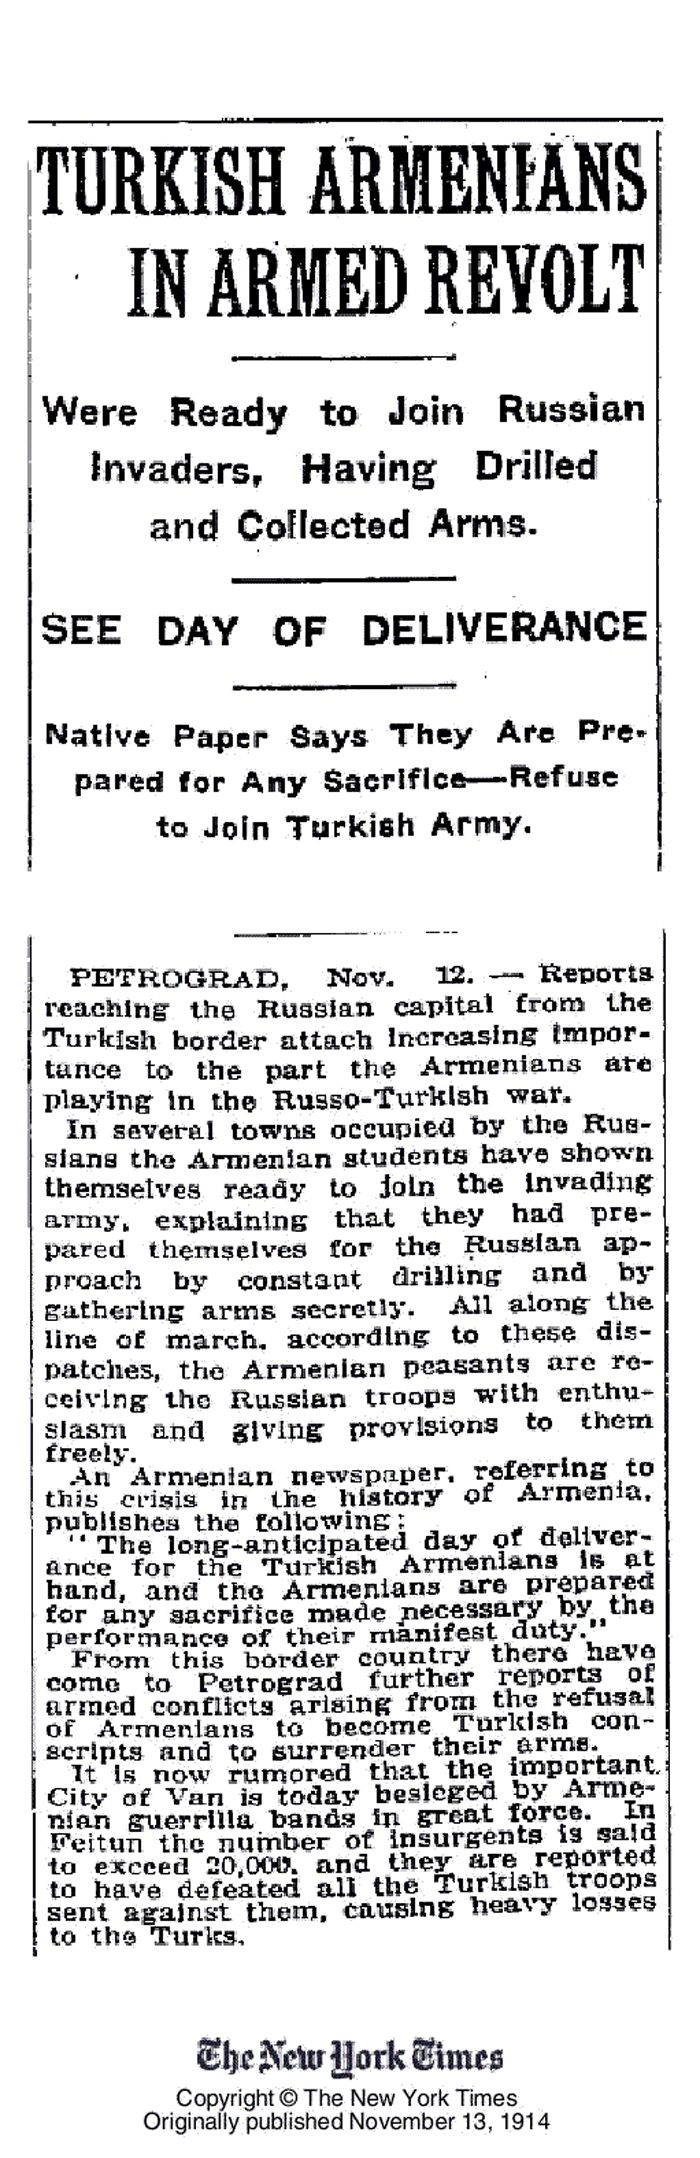 NYT: 13 Nov 1914 - Turkish Armenians Refuse To Join Turkish Army - Ready To Join Russian Invaders for Armed Revolt